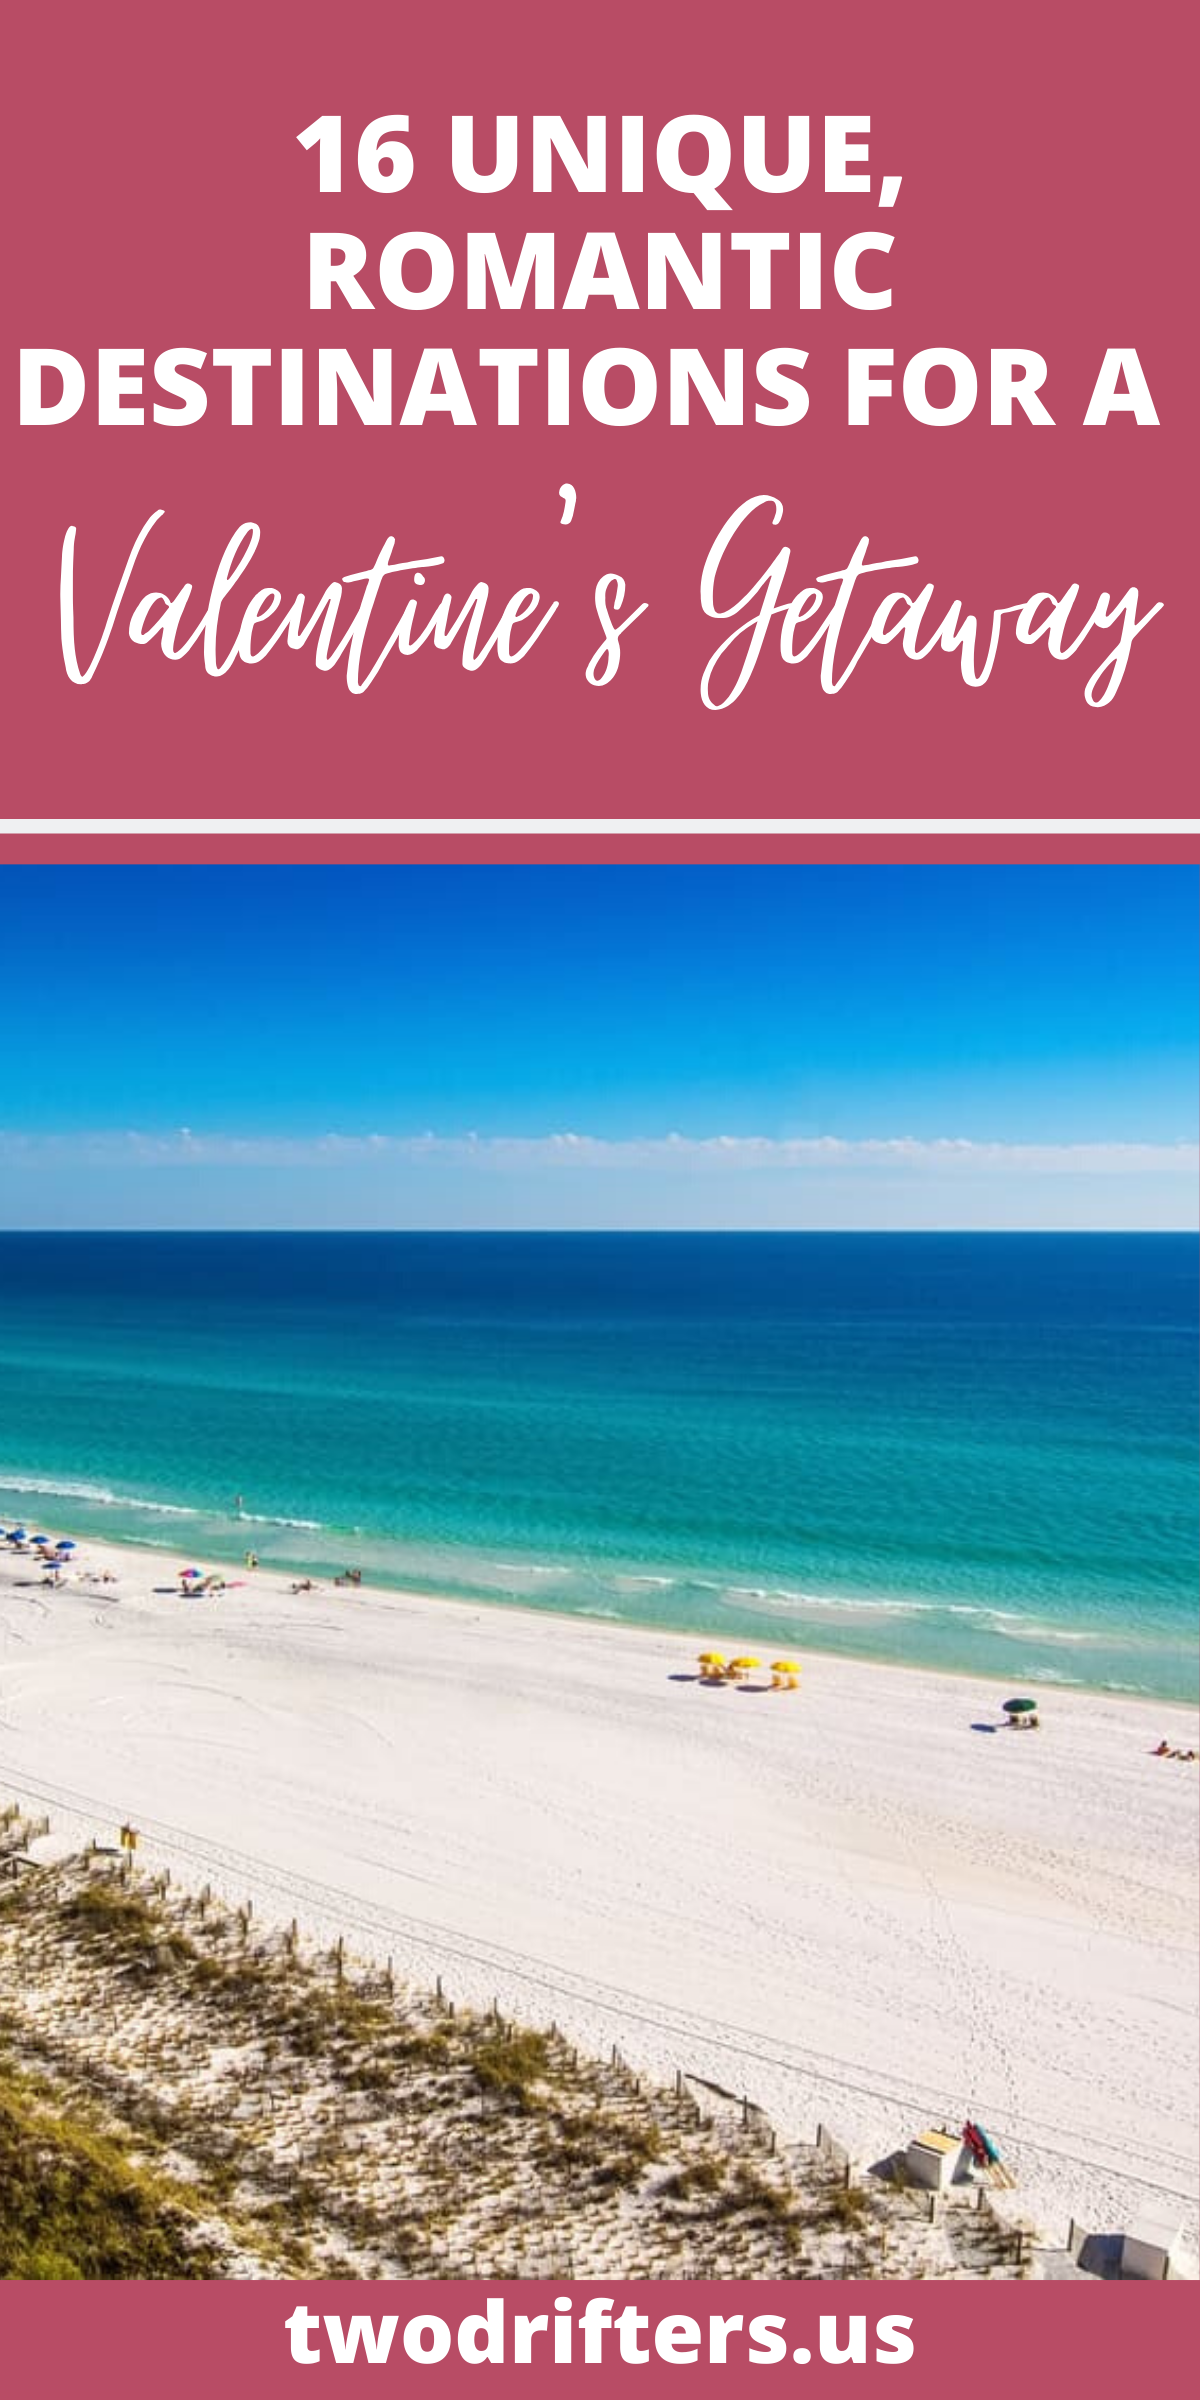 16 Romantic Valentine S Getaways In The Usa 2021 In 2020 Romantic Travel Destinations Romantic Vacations Romantic Travel